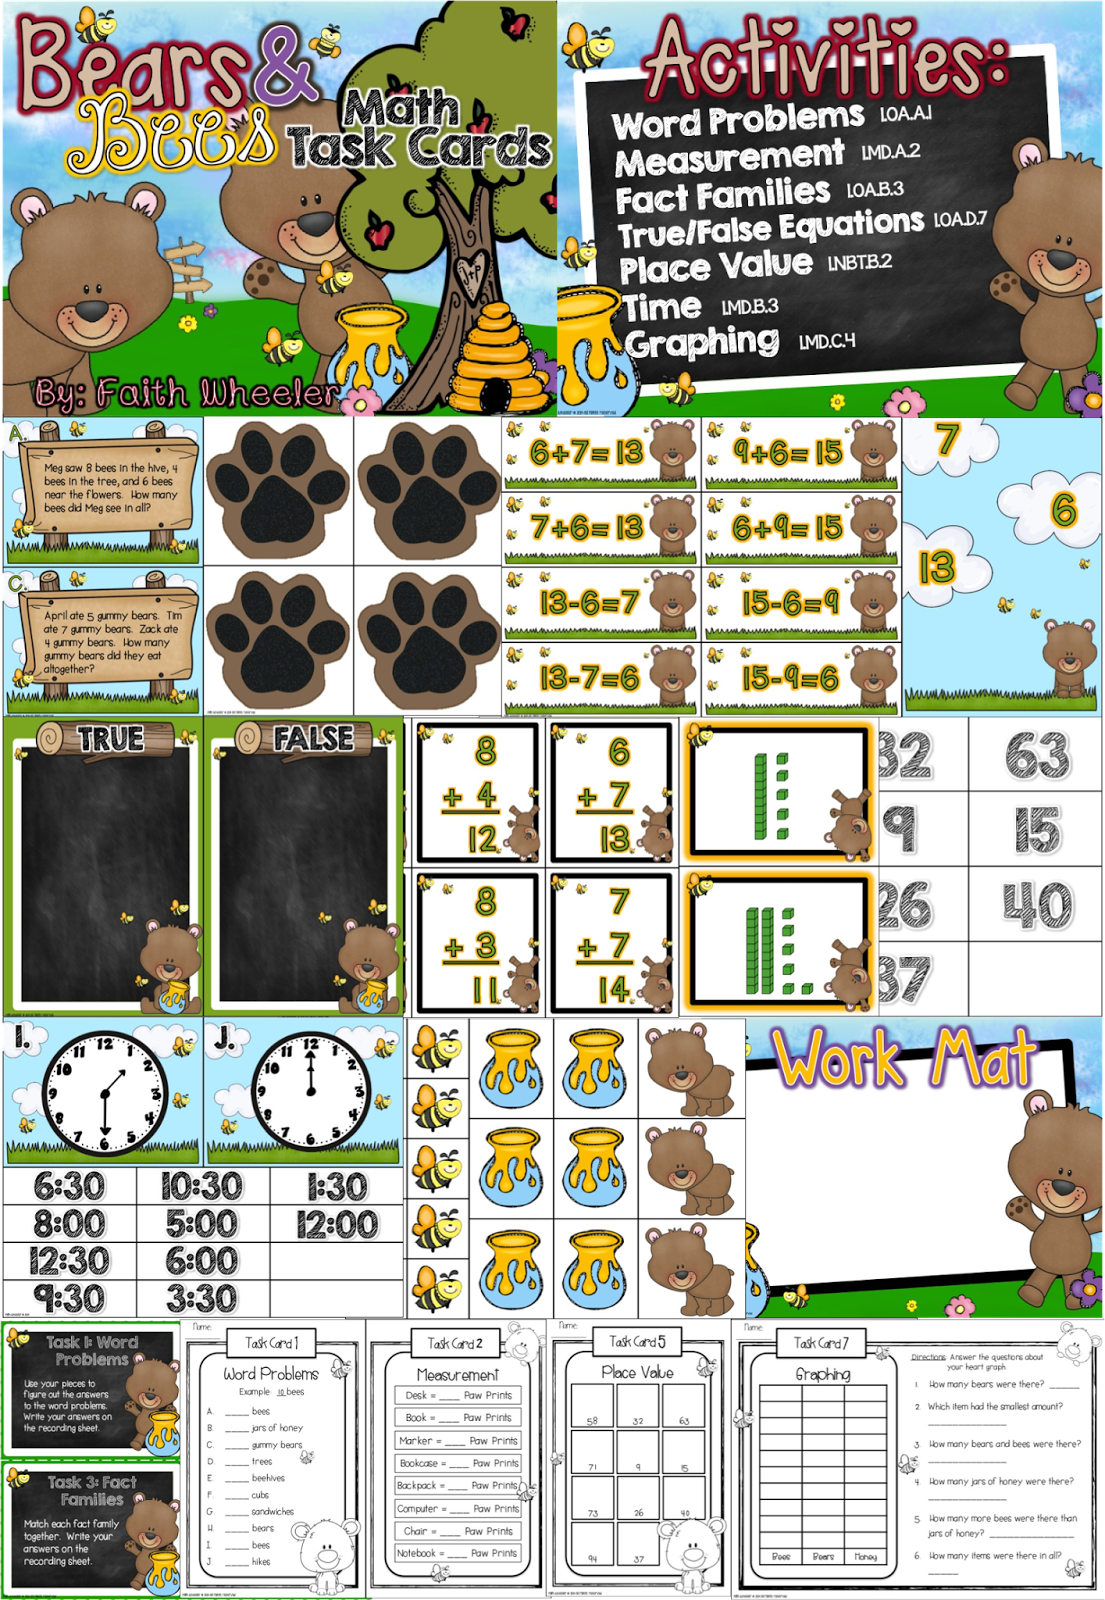 Bears And Bees Task Cards